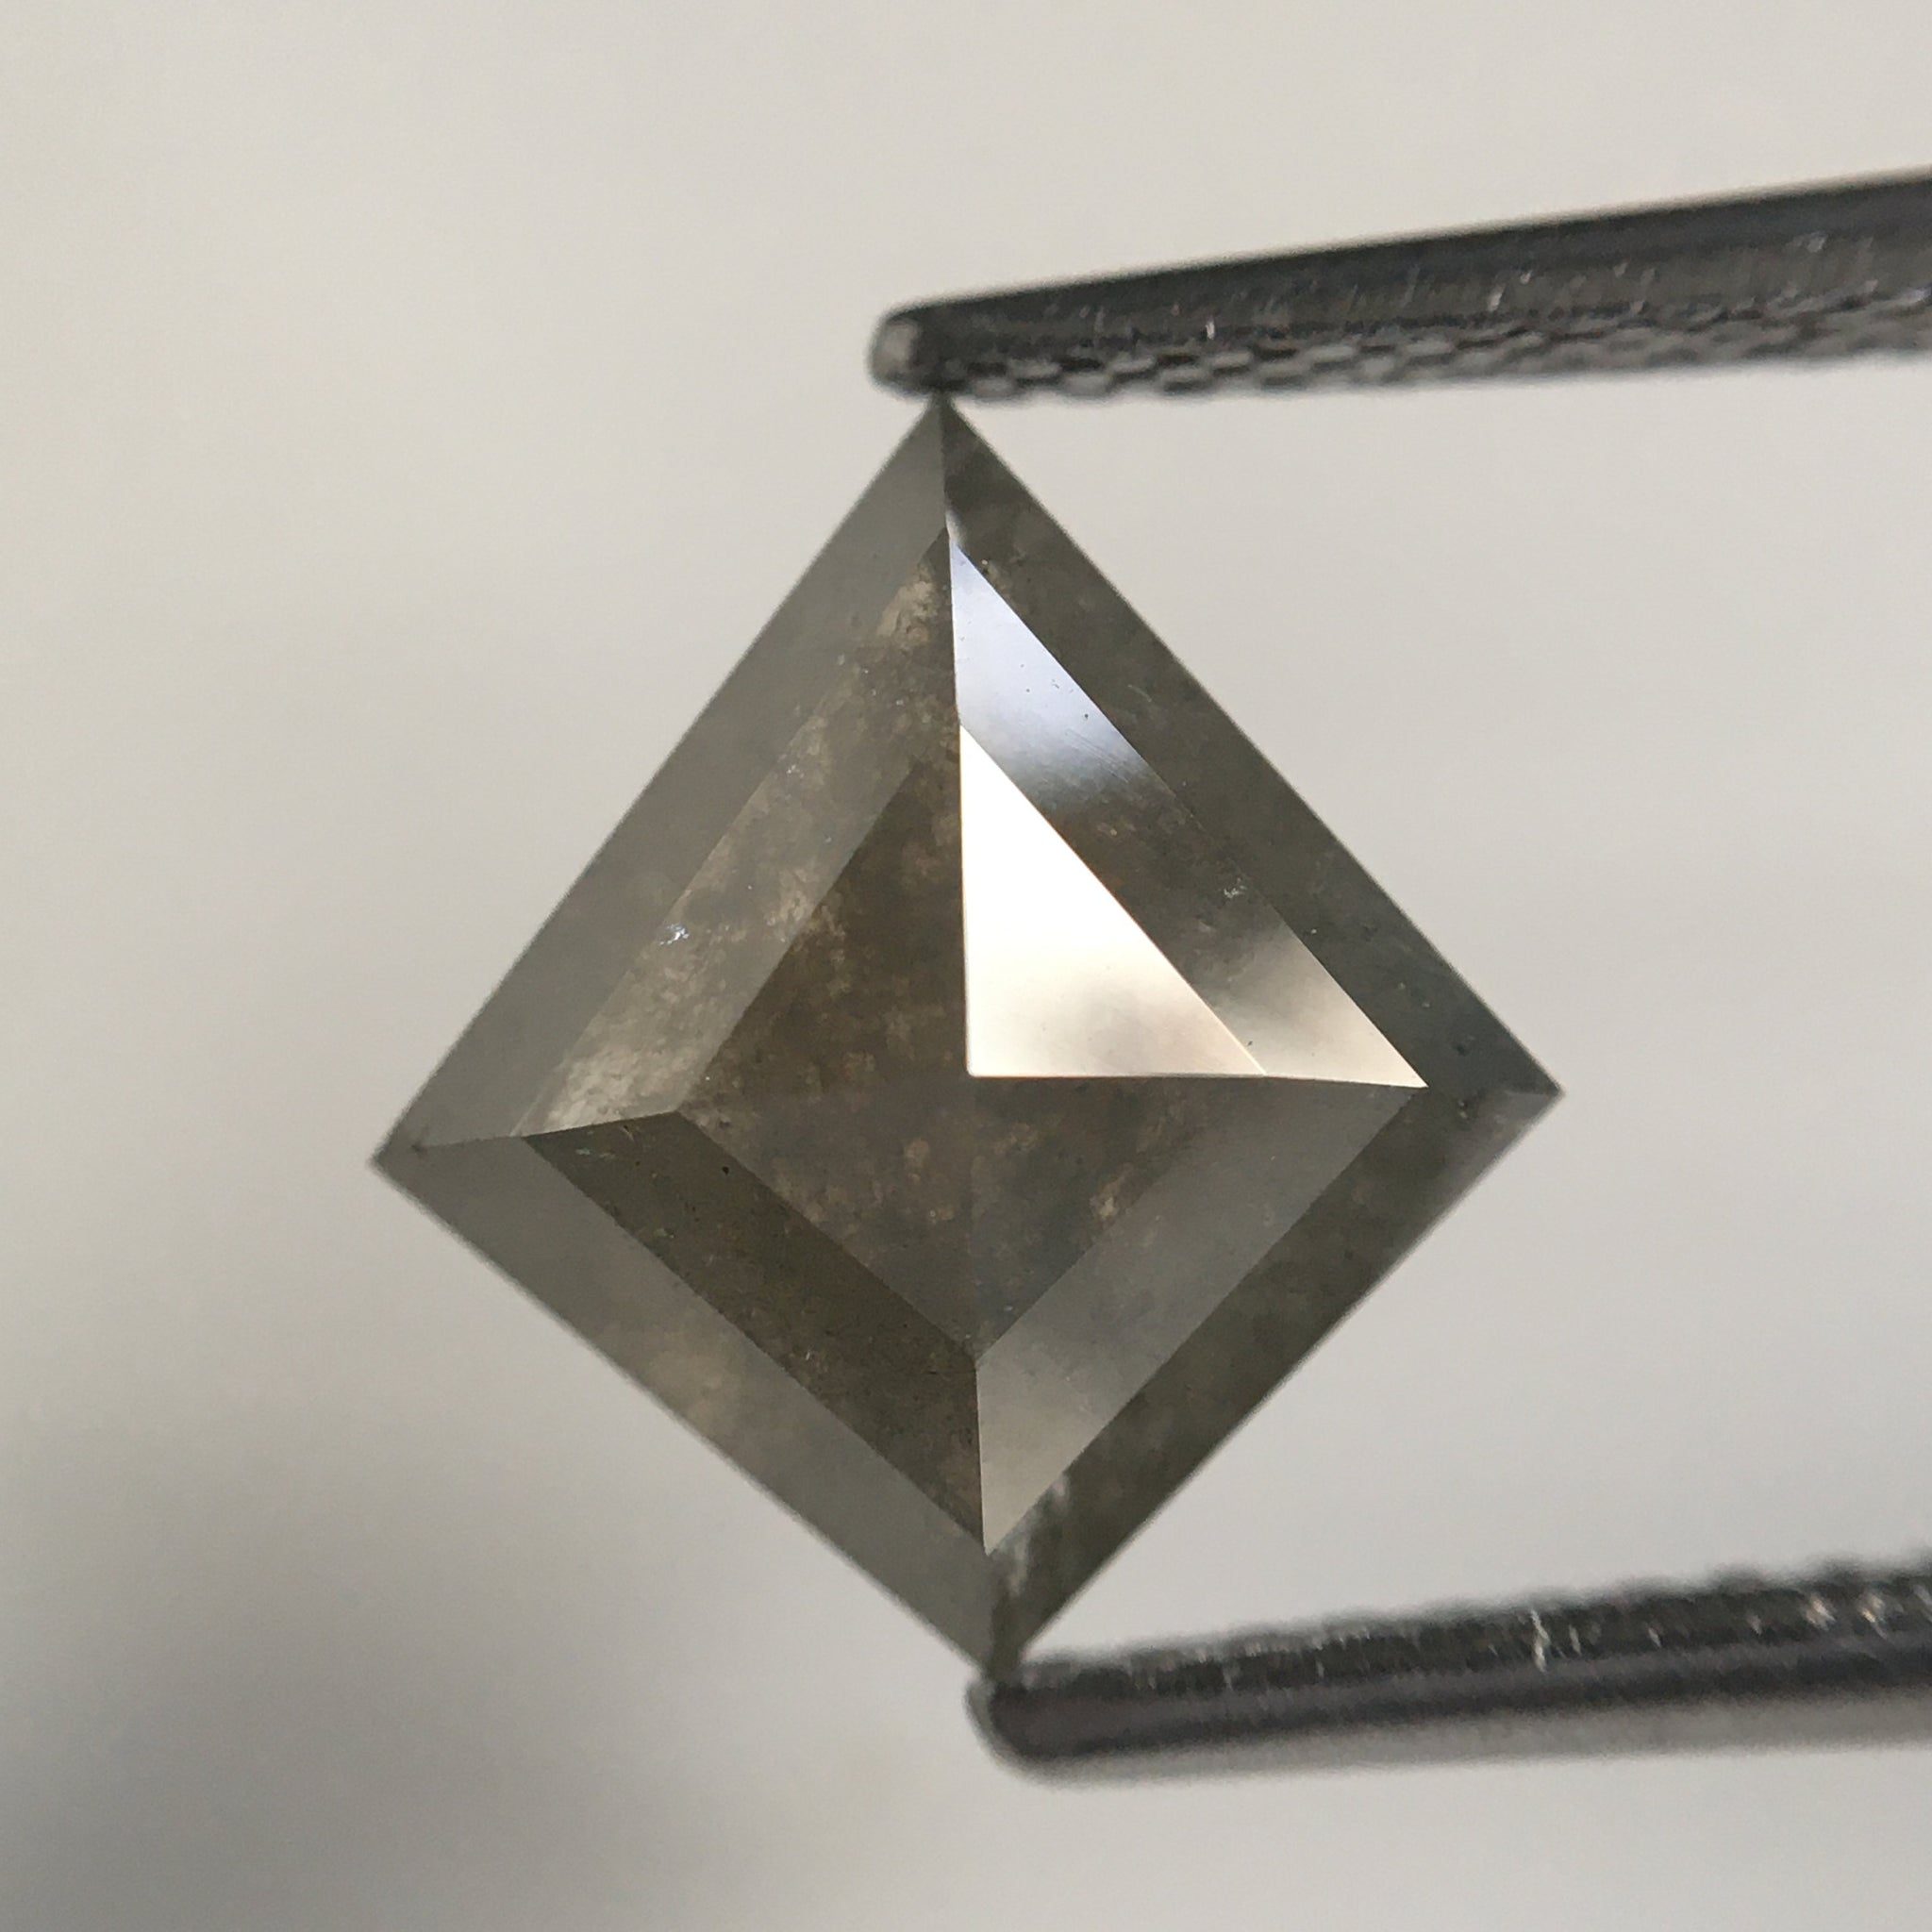 2.69 Ct Natural Diamond Kite Shape, 10.55 MM X 9.72 MM X 4.42 MM Fancy Grey Color Geometric shape natural diamond for Jewelry SJ64/43 - Amba Jewel